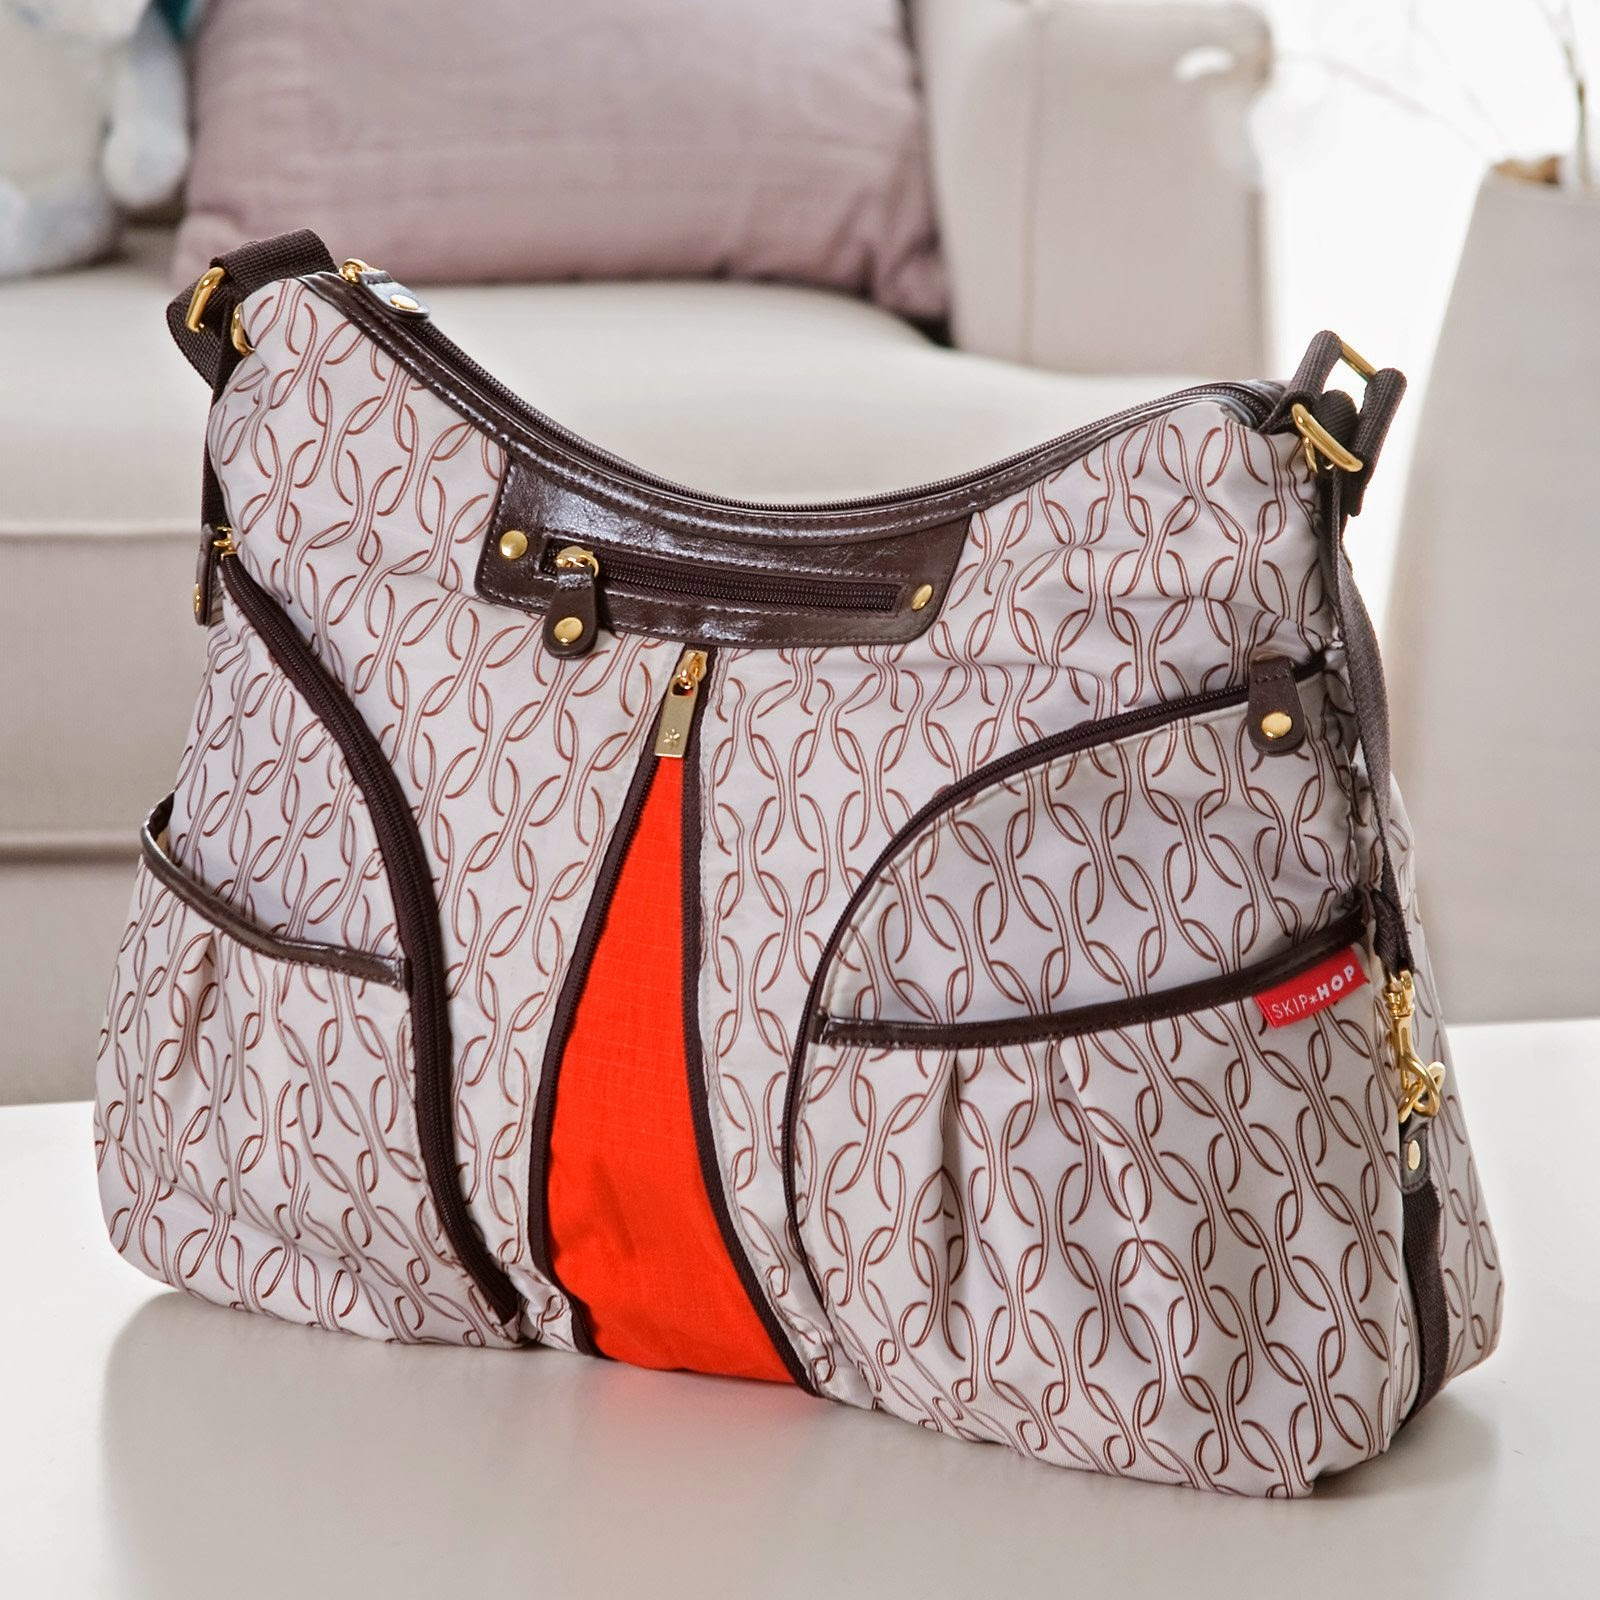 baby bump coffeebean nappy bag diaper bag vanchi fleetwood skip hop versa vs storsak nina. Black Bedroom Furniture Sets. Home Design Ideas